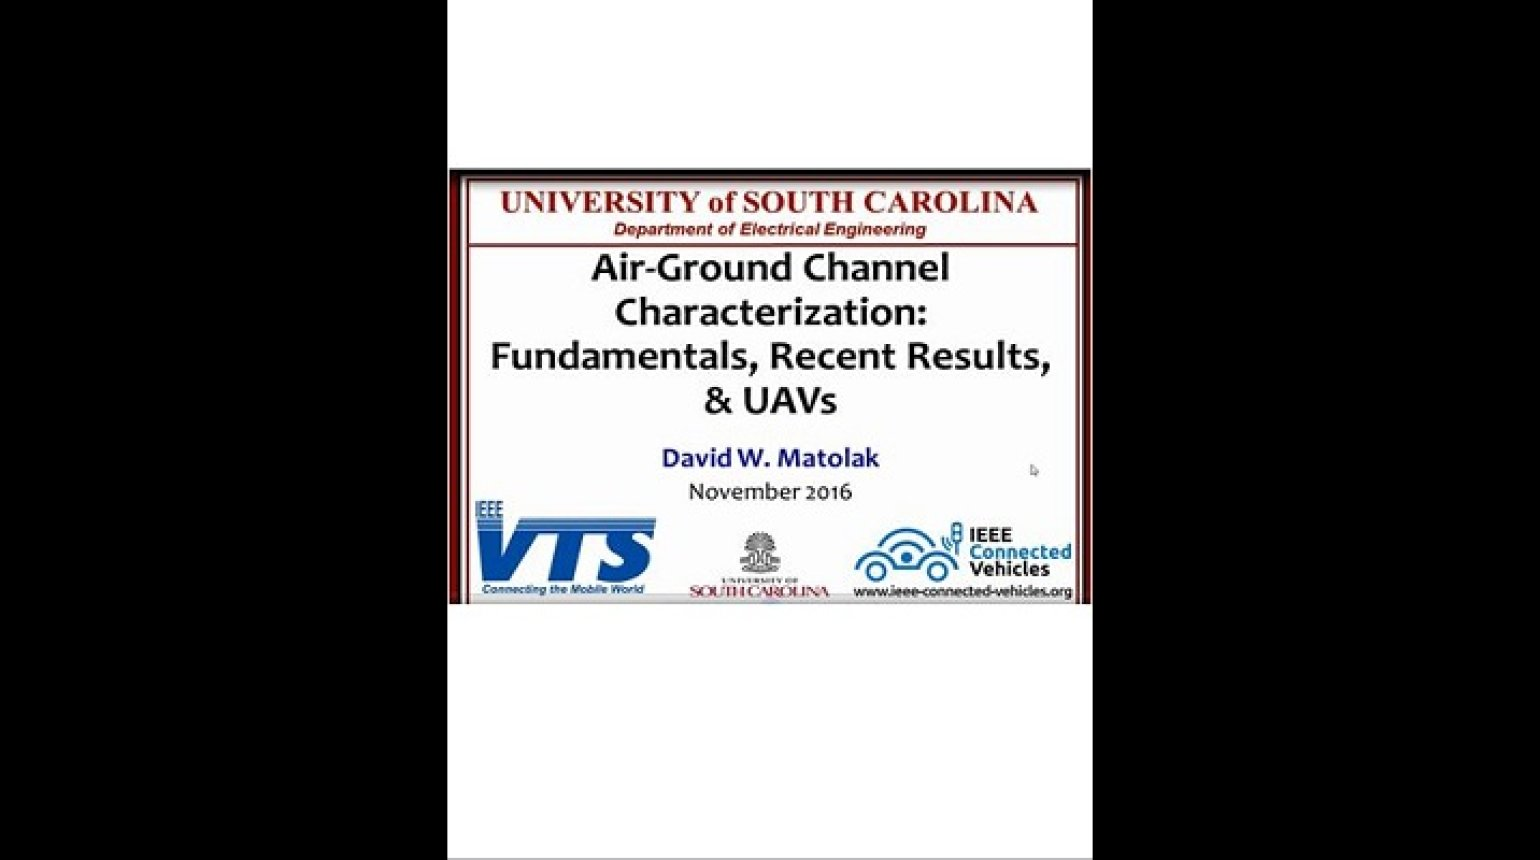 Video - Air-Ground Channel Characterization